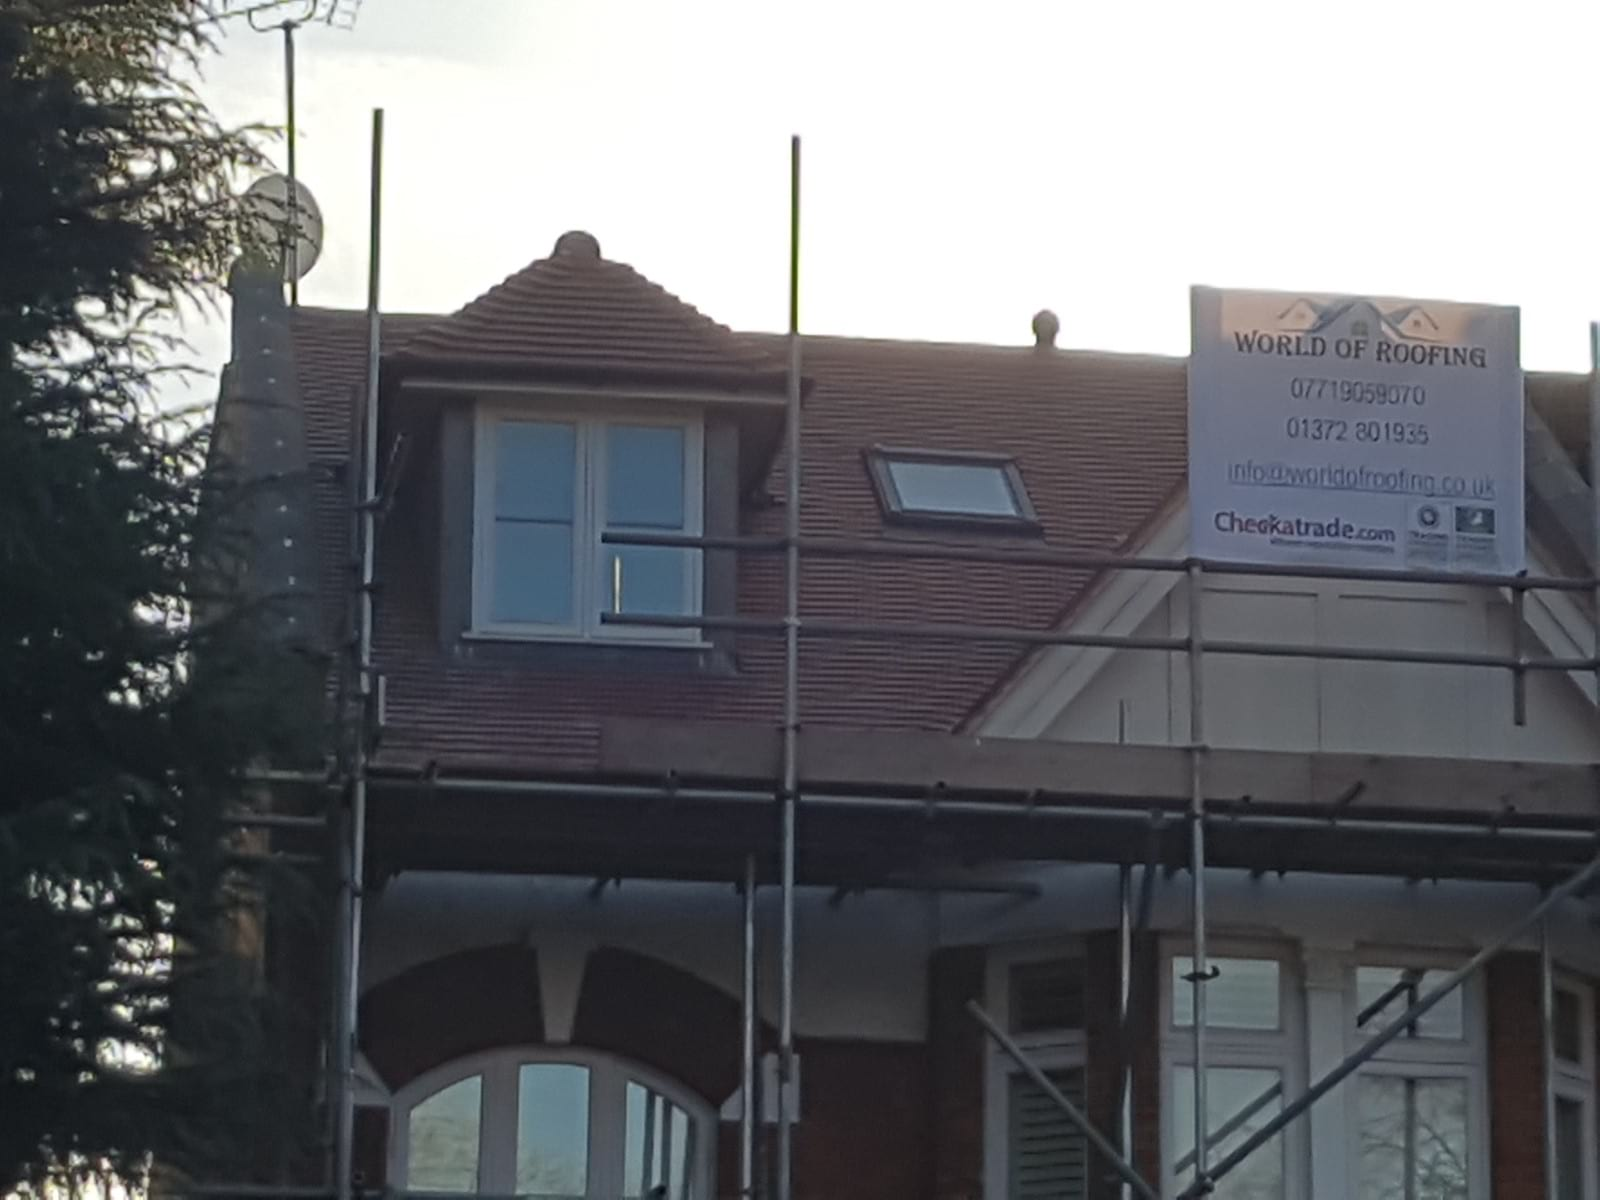 Roof Repairs London Surrey Services Affordable Fast Repairs